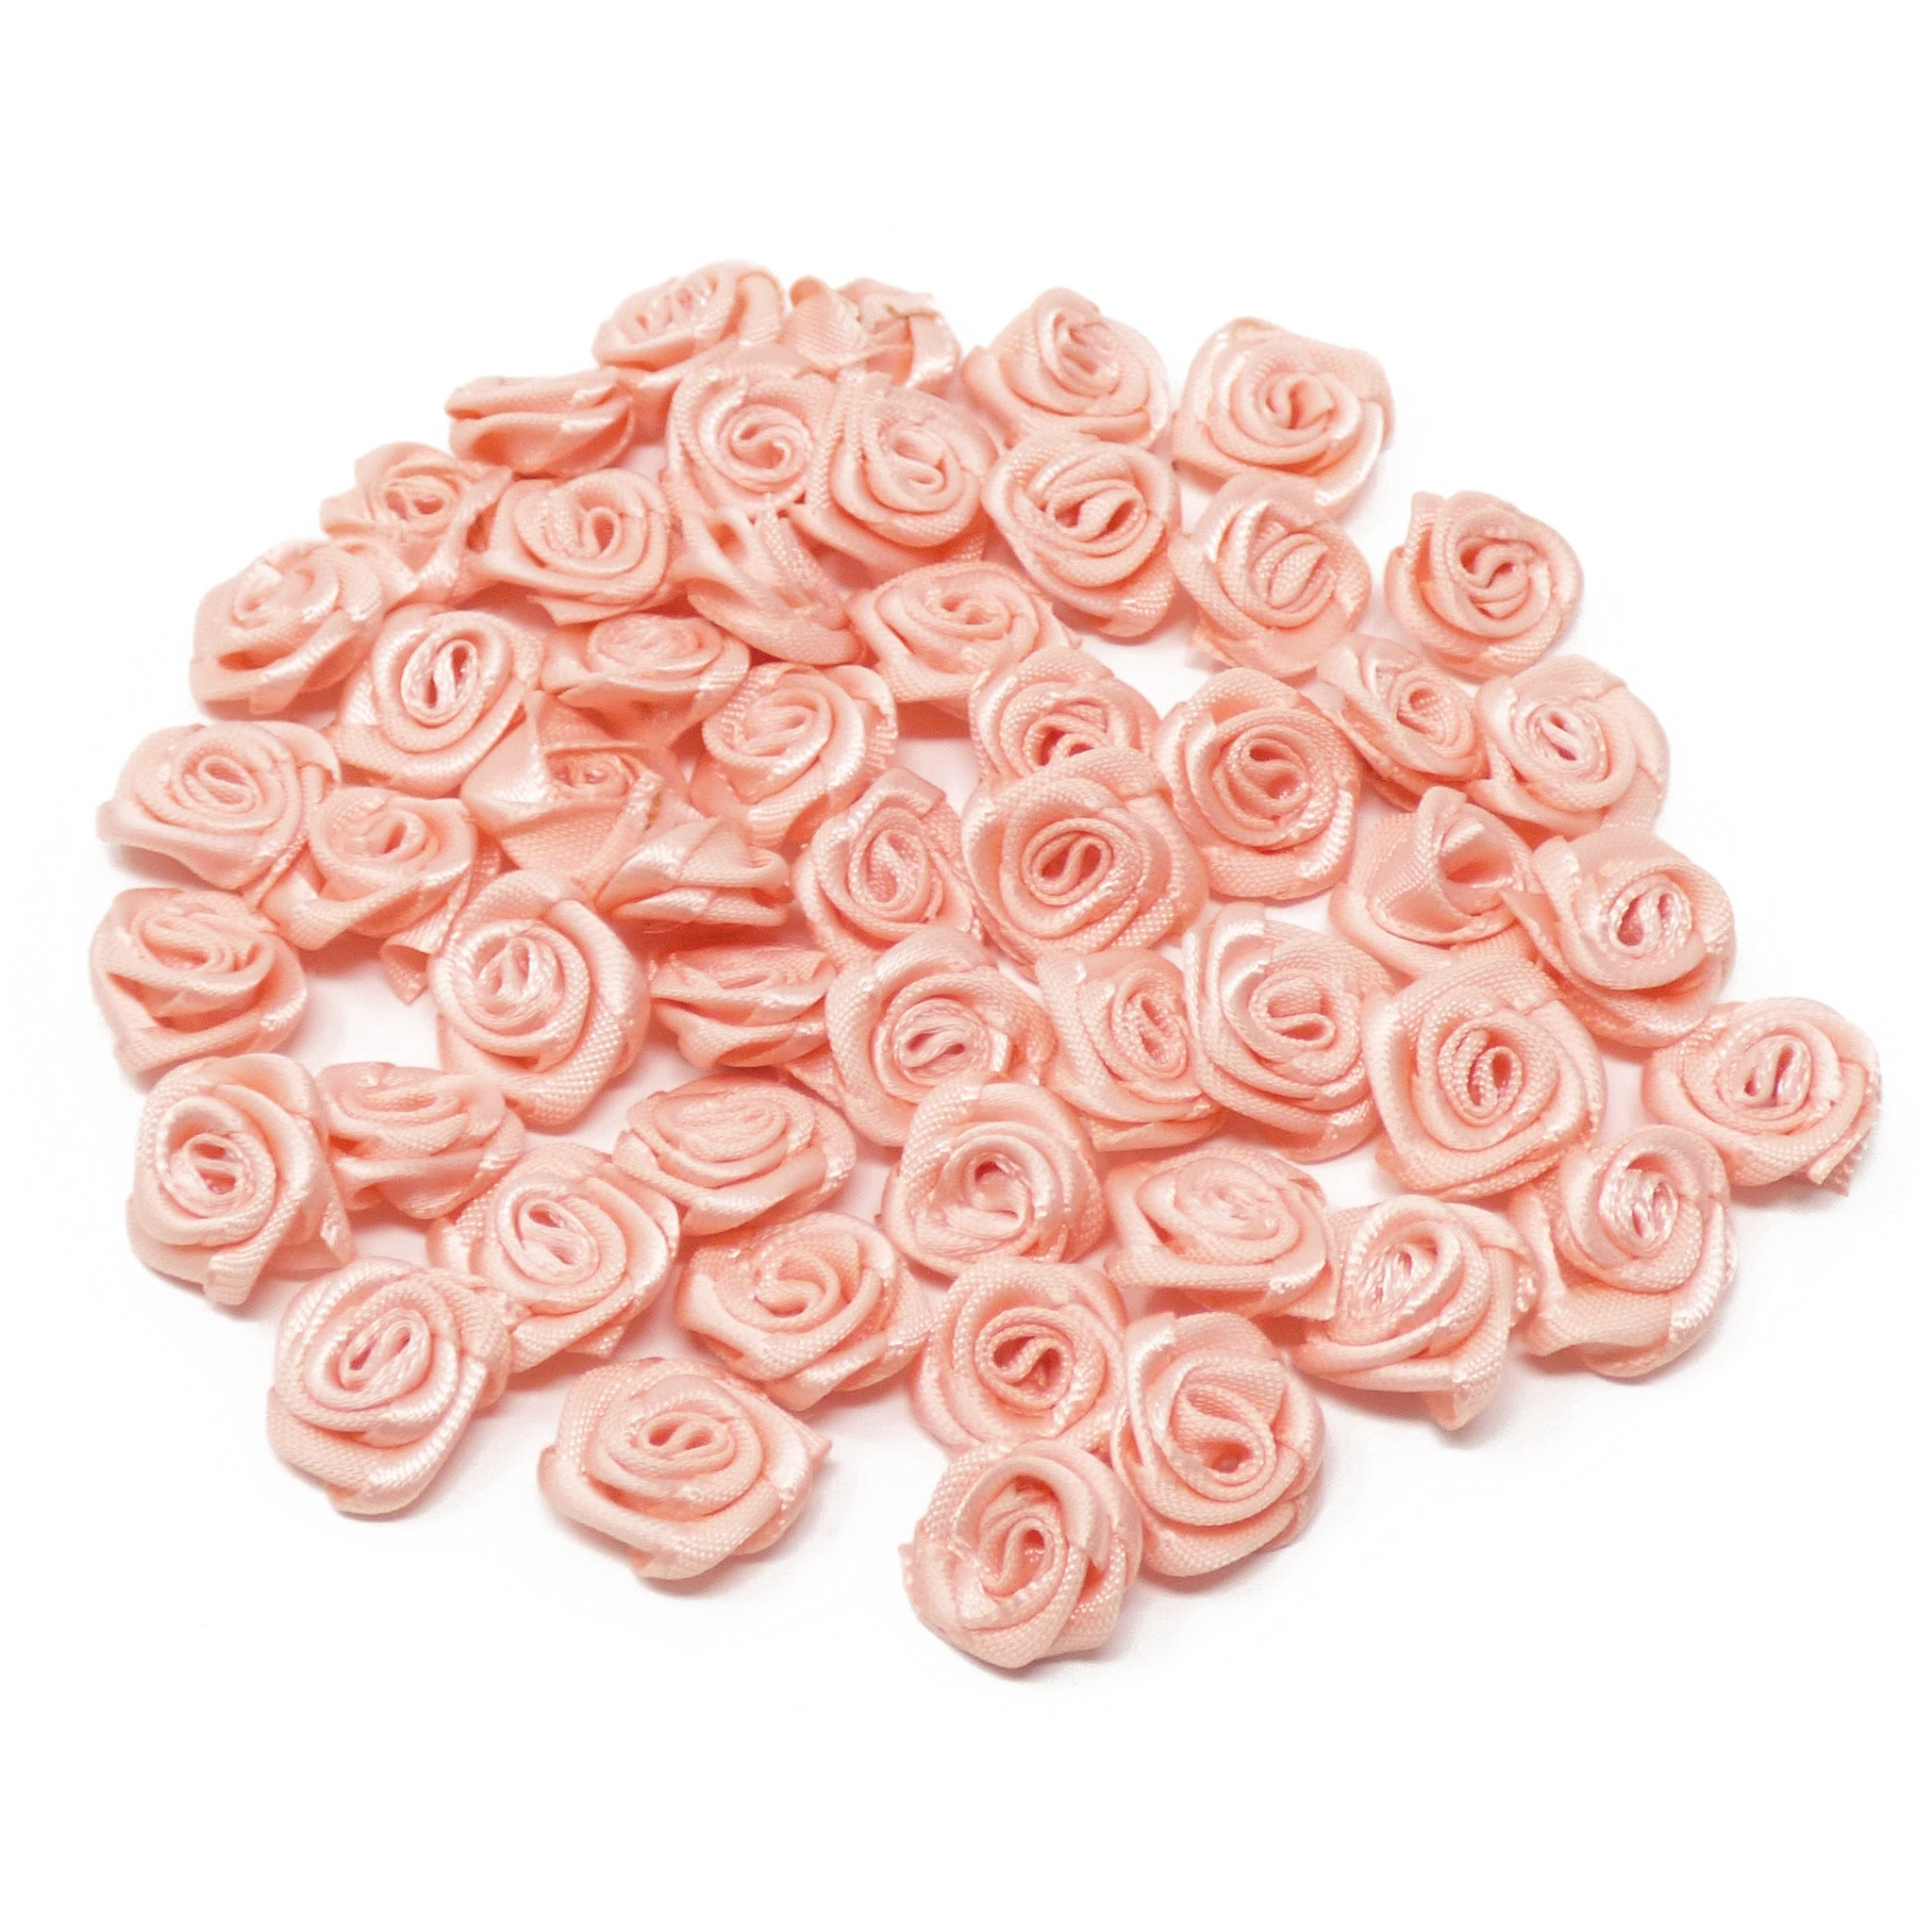 15mm Miniature Satin Ribbon Roses